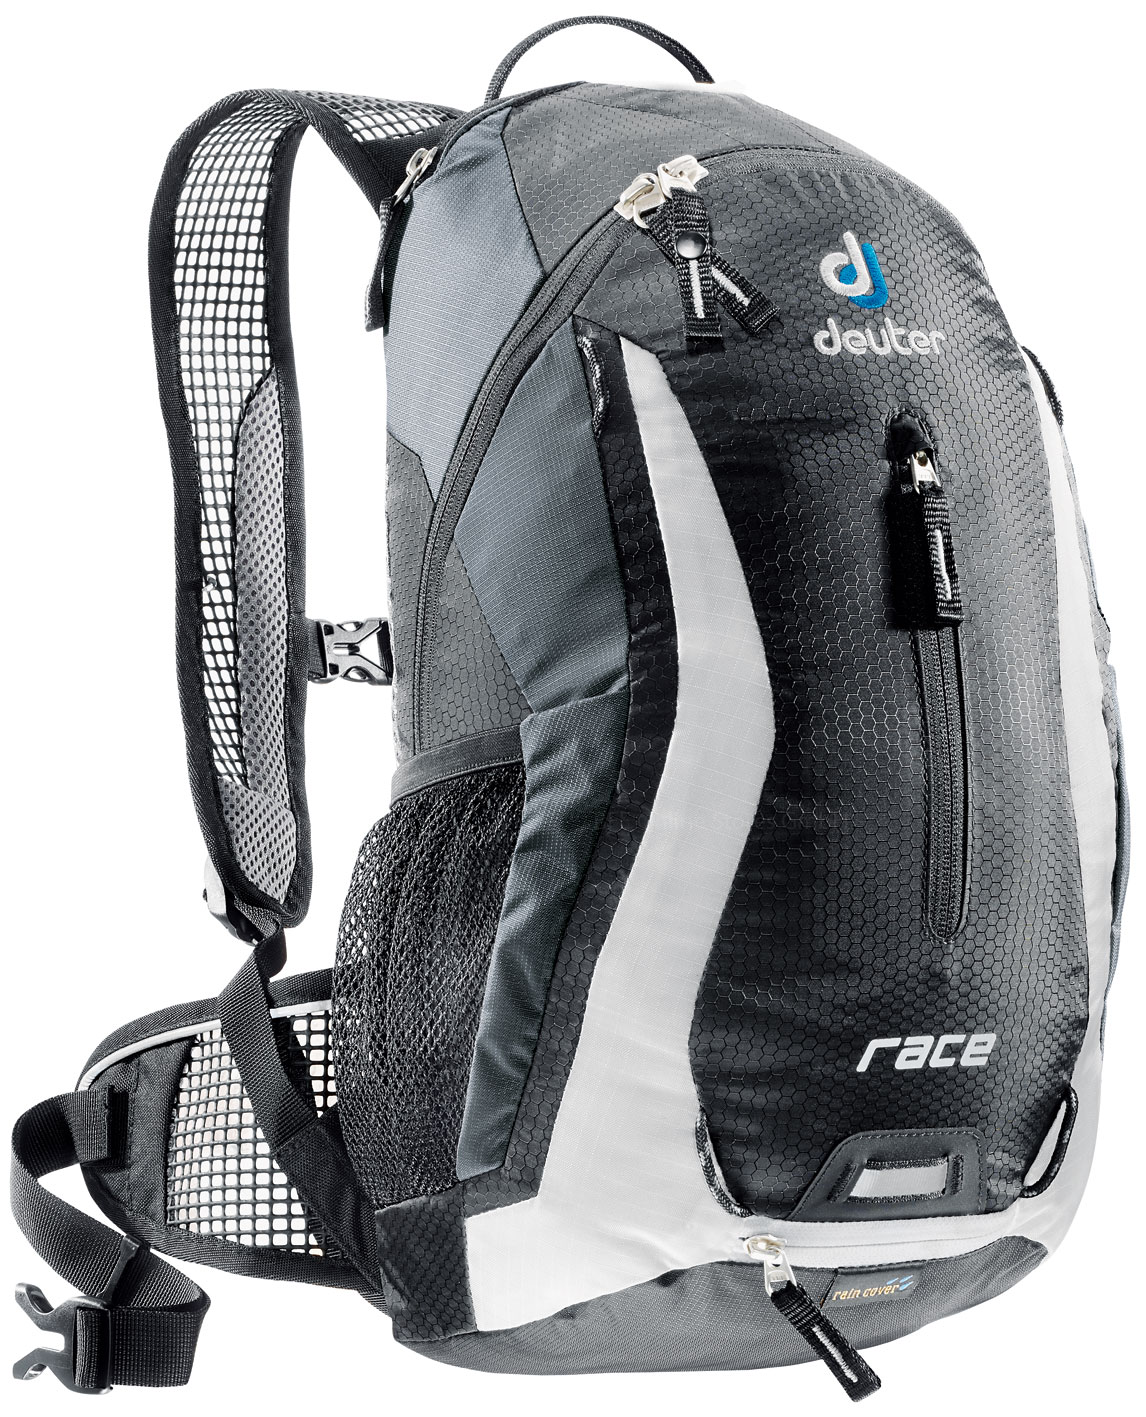 Deuter Race black-white-30